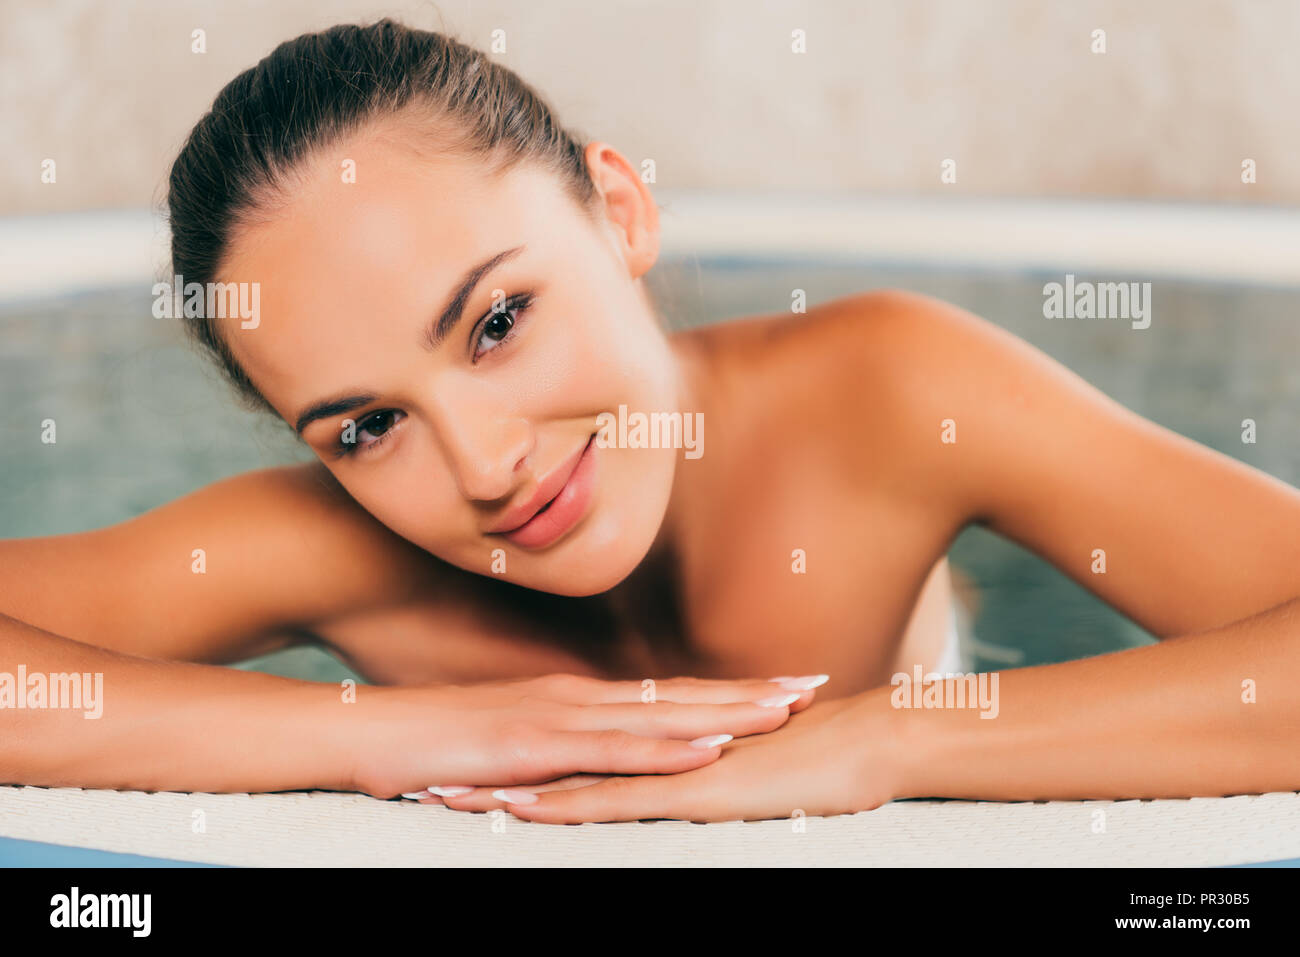 woman relaxing in swimming pool in spa salon and looking at camera - Stock Image